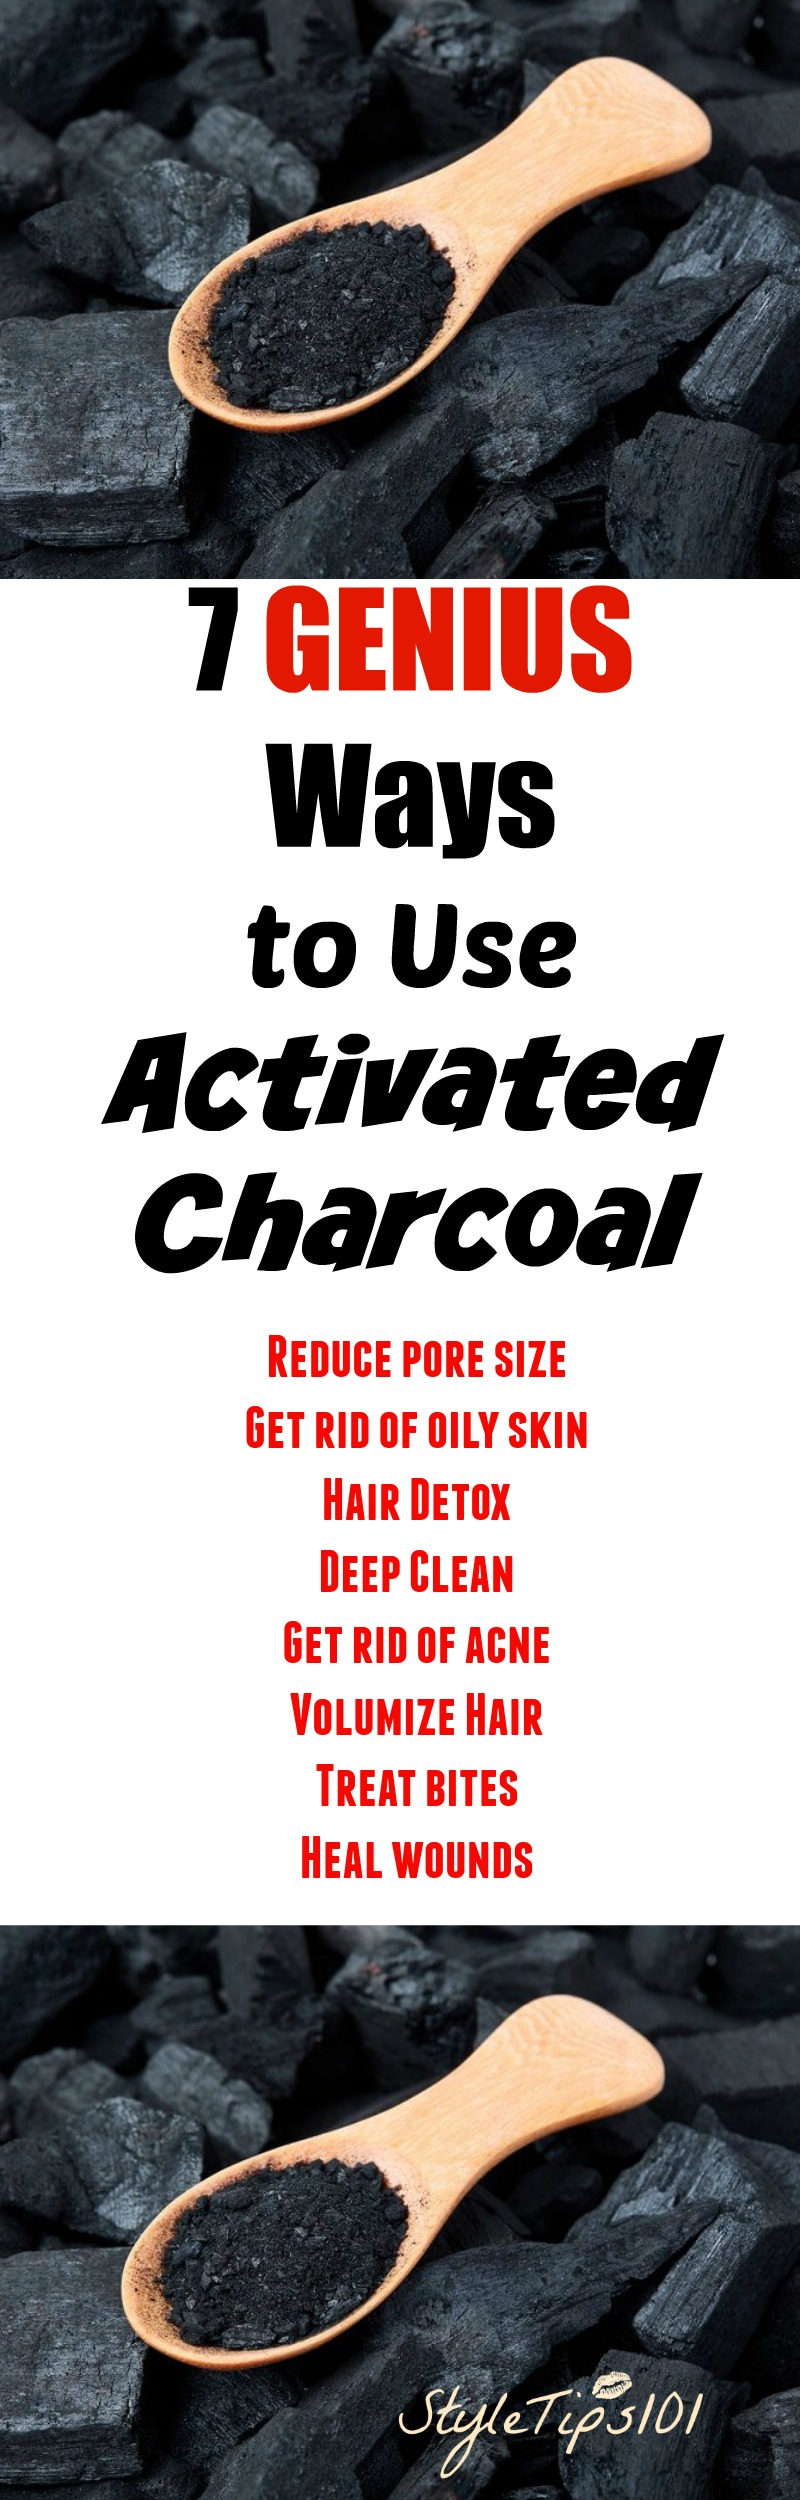 ways to use activated charcoal